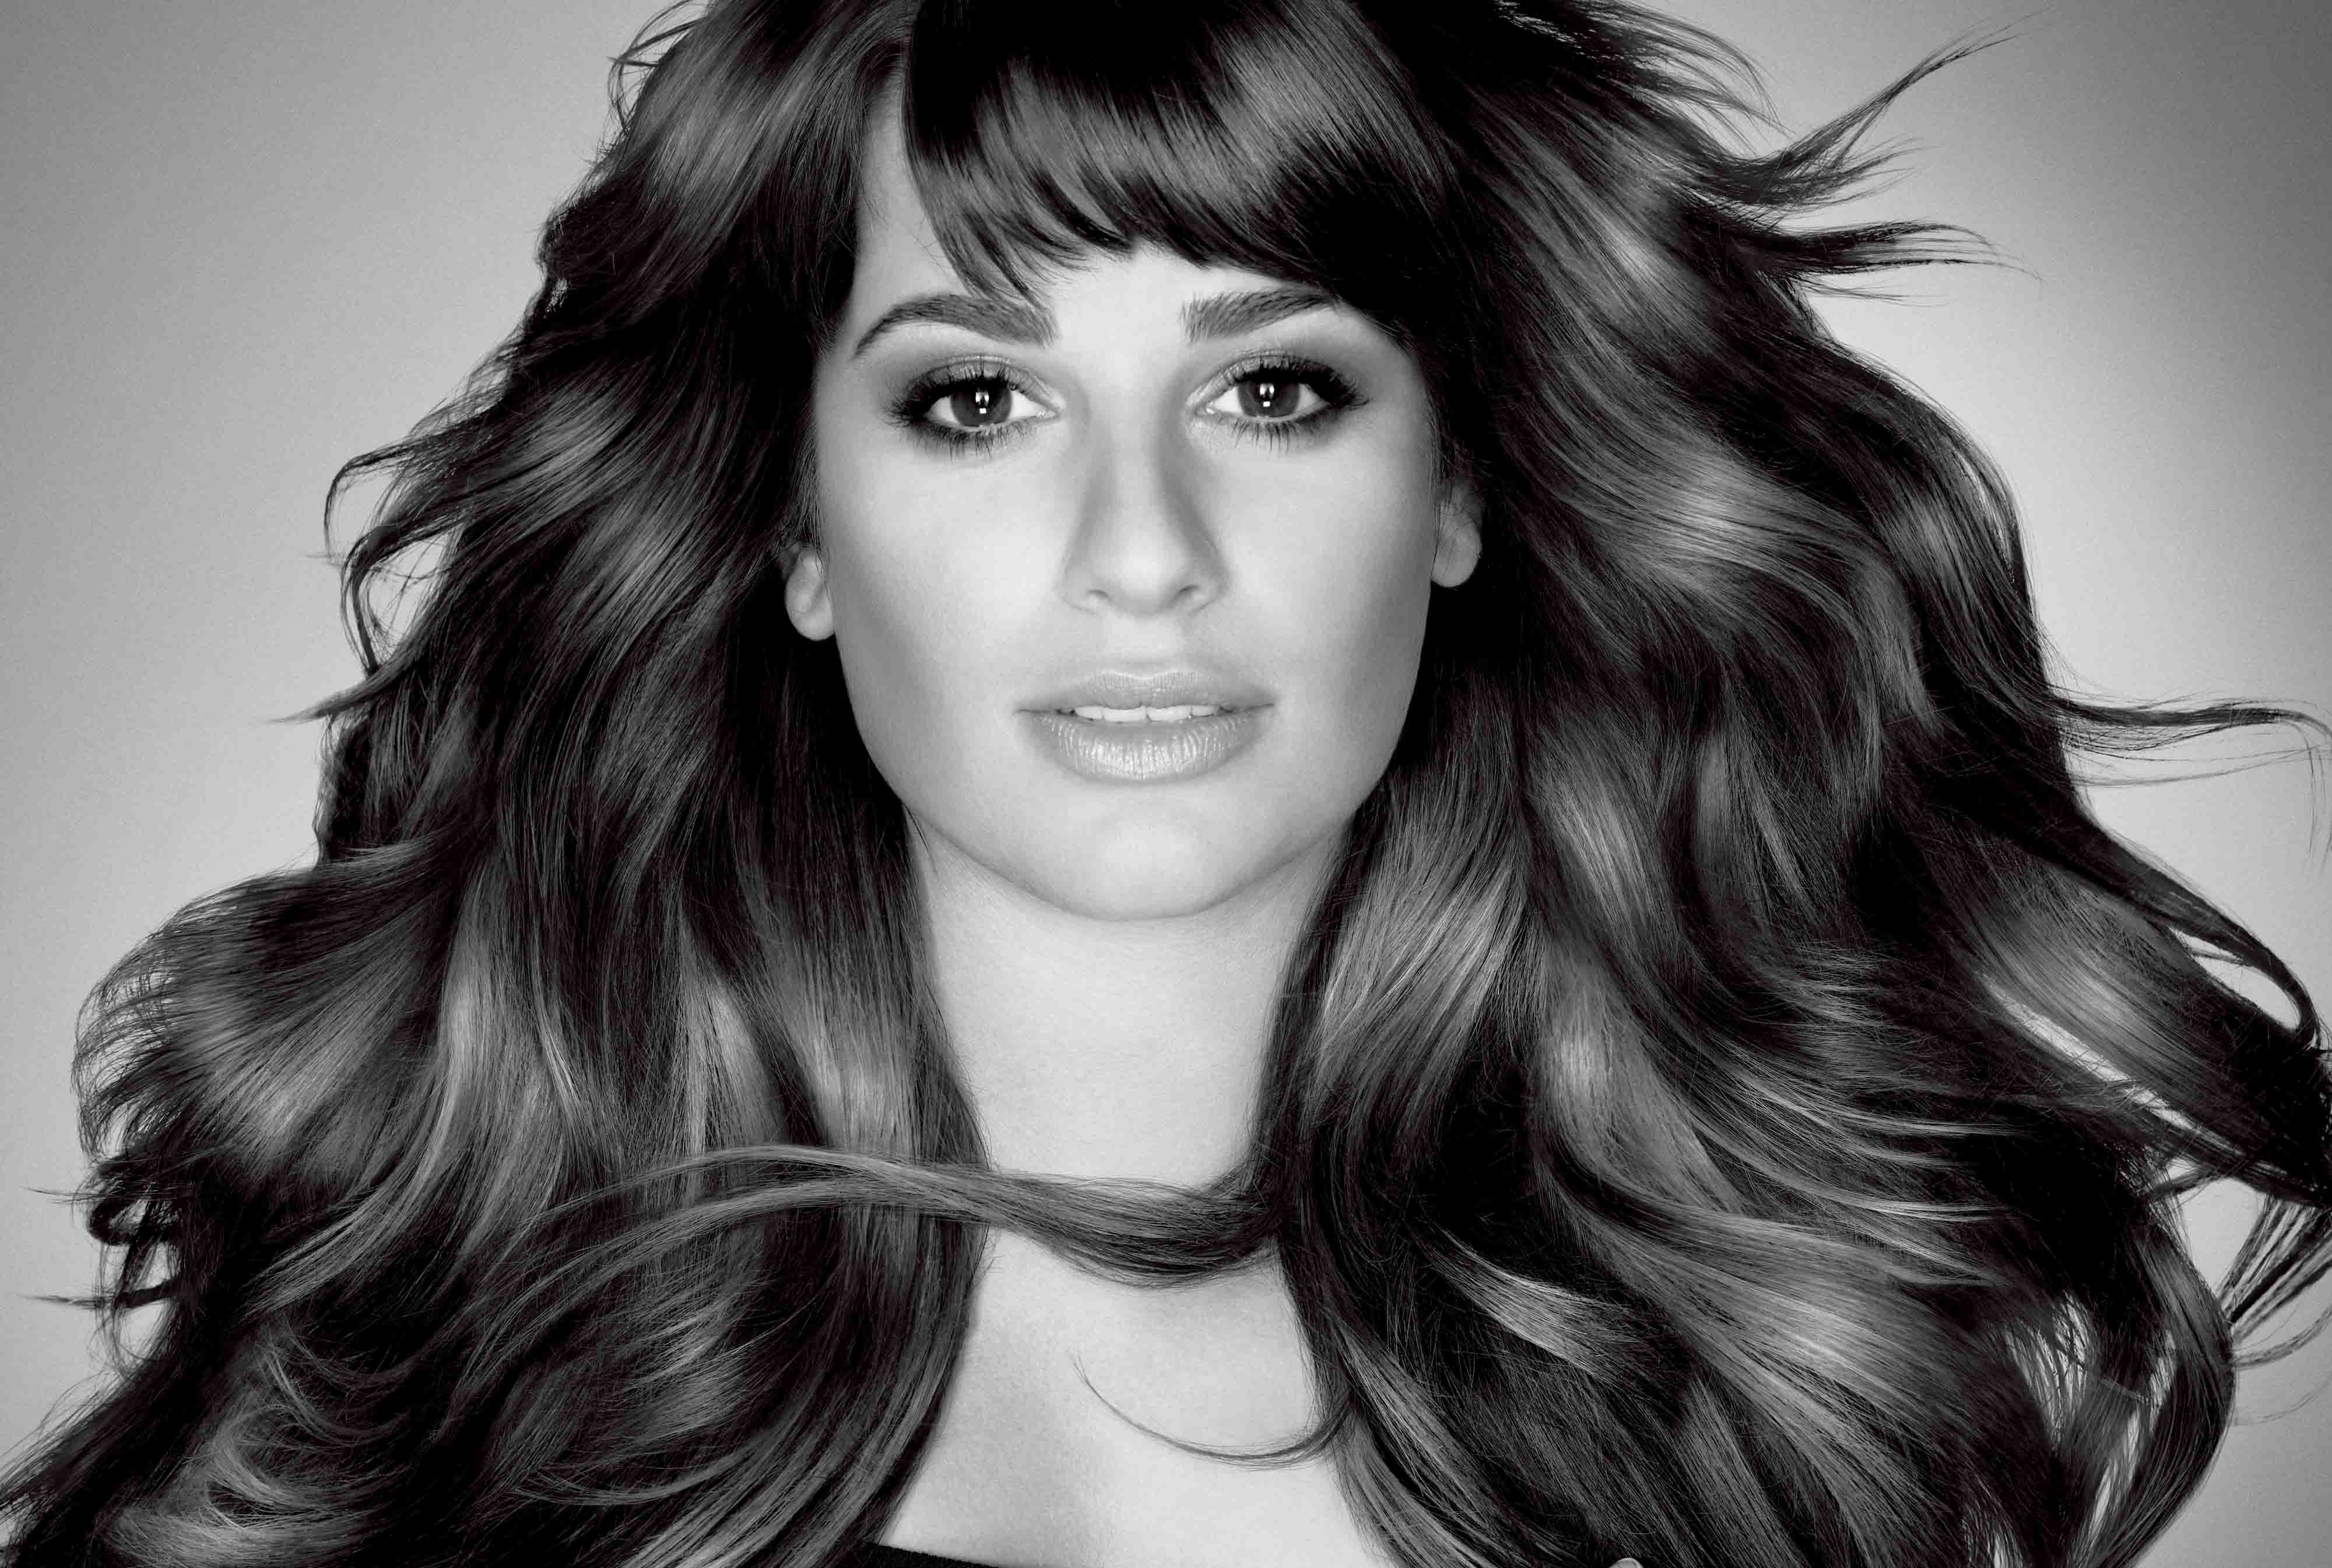 Lea michele actress black and white stills